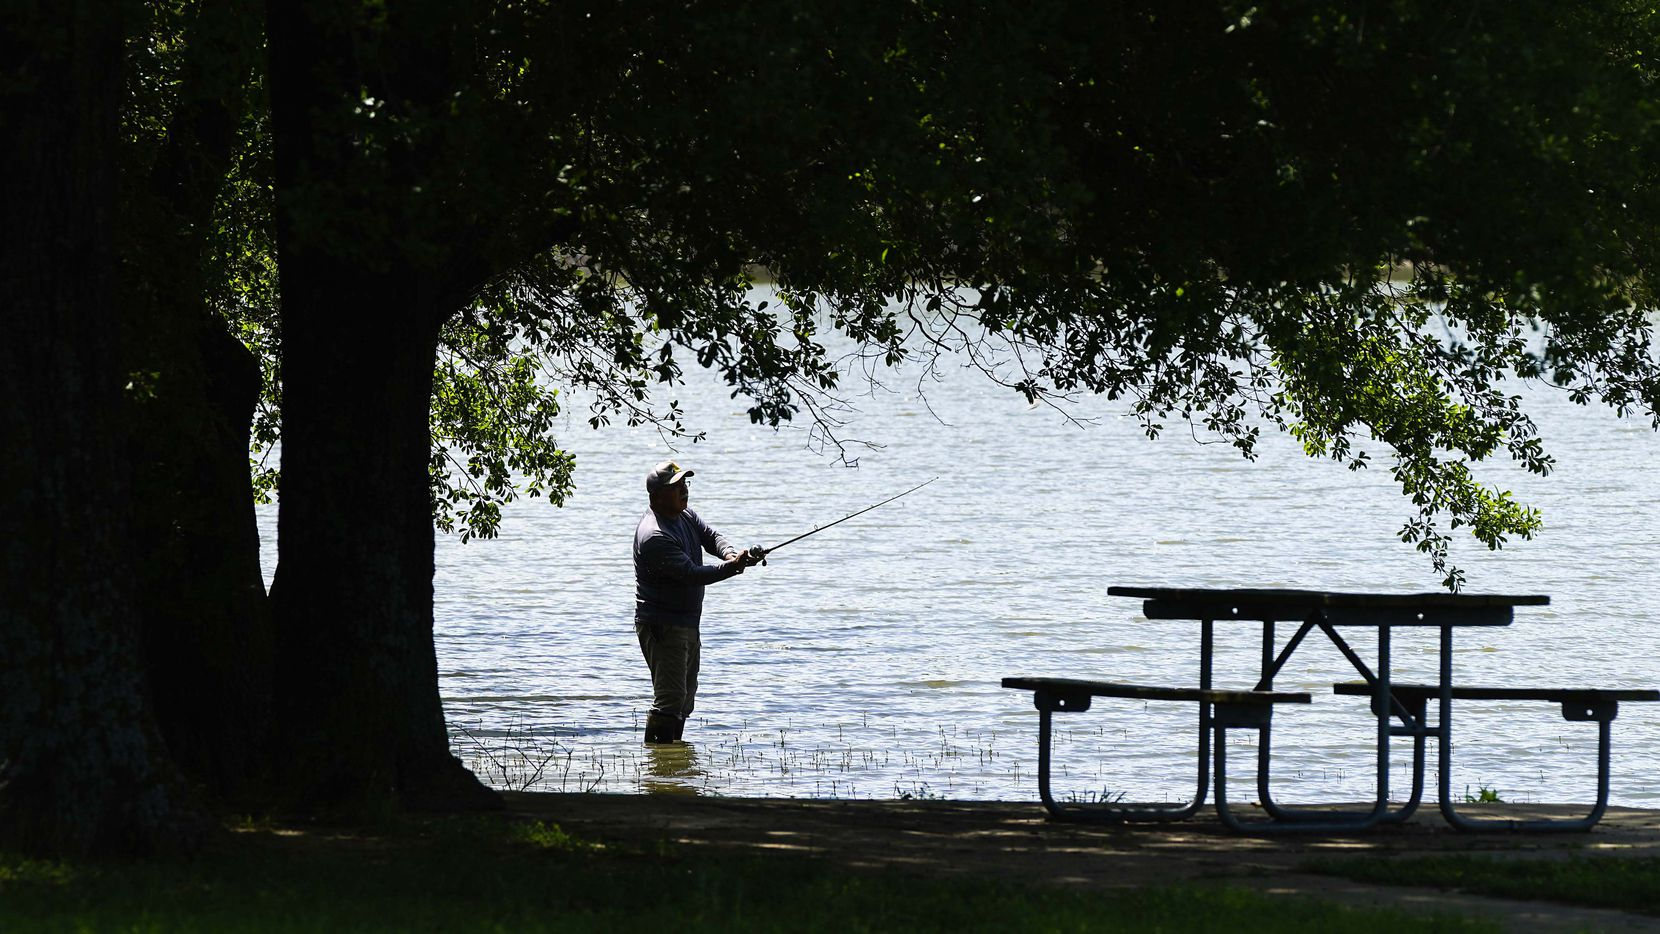 "Rudy Sanchez of Dallas casts a line while fishing at Lake Tawakoni State Park on Tuesday, April 7, 2020. State parks will temporarily close starting at close of business Tuesday, in the name of public safety due to the COVID-19 pandemic, Texas Parks and Wildlife officials announced. Sanchez, who fishes at the park a few times a week, said he was ready to pack up and head home from the day when he got a text message announcing the closures, he said, ""I'm staying!"" and planned to fish for a few more hours."